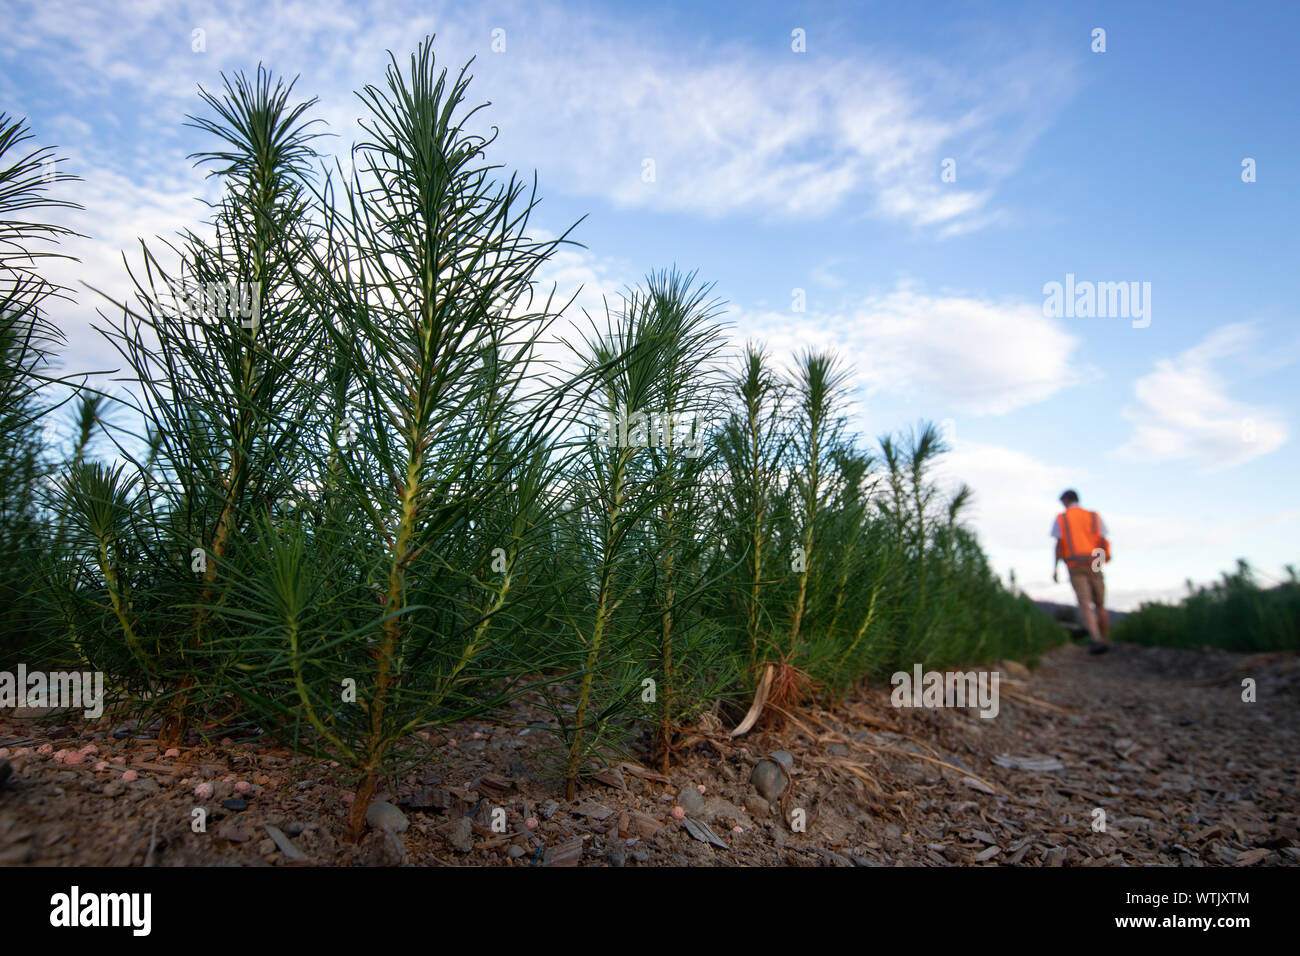 Picture by Tim Cuff - 20 February 2019 - Pine tree seedlings growing arborgen's nursery, Spring Grove, Nelson, New Zealand Stock Photo